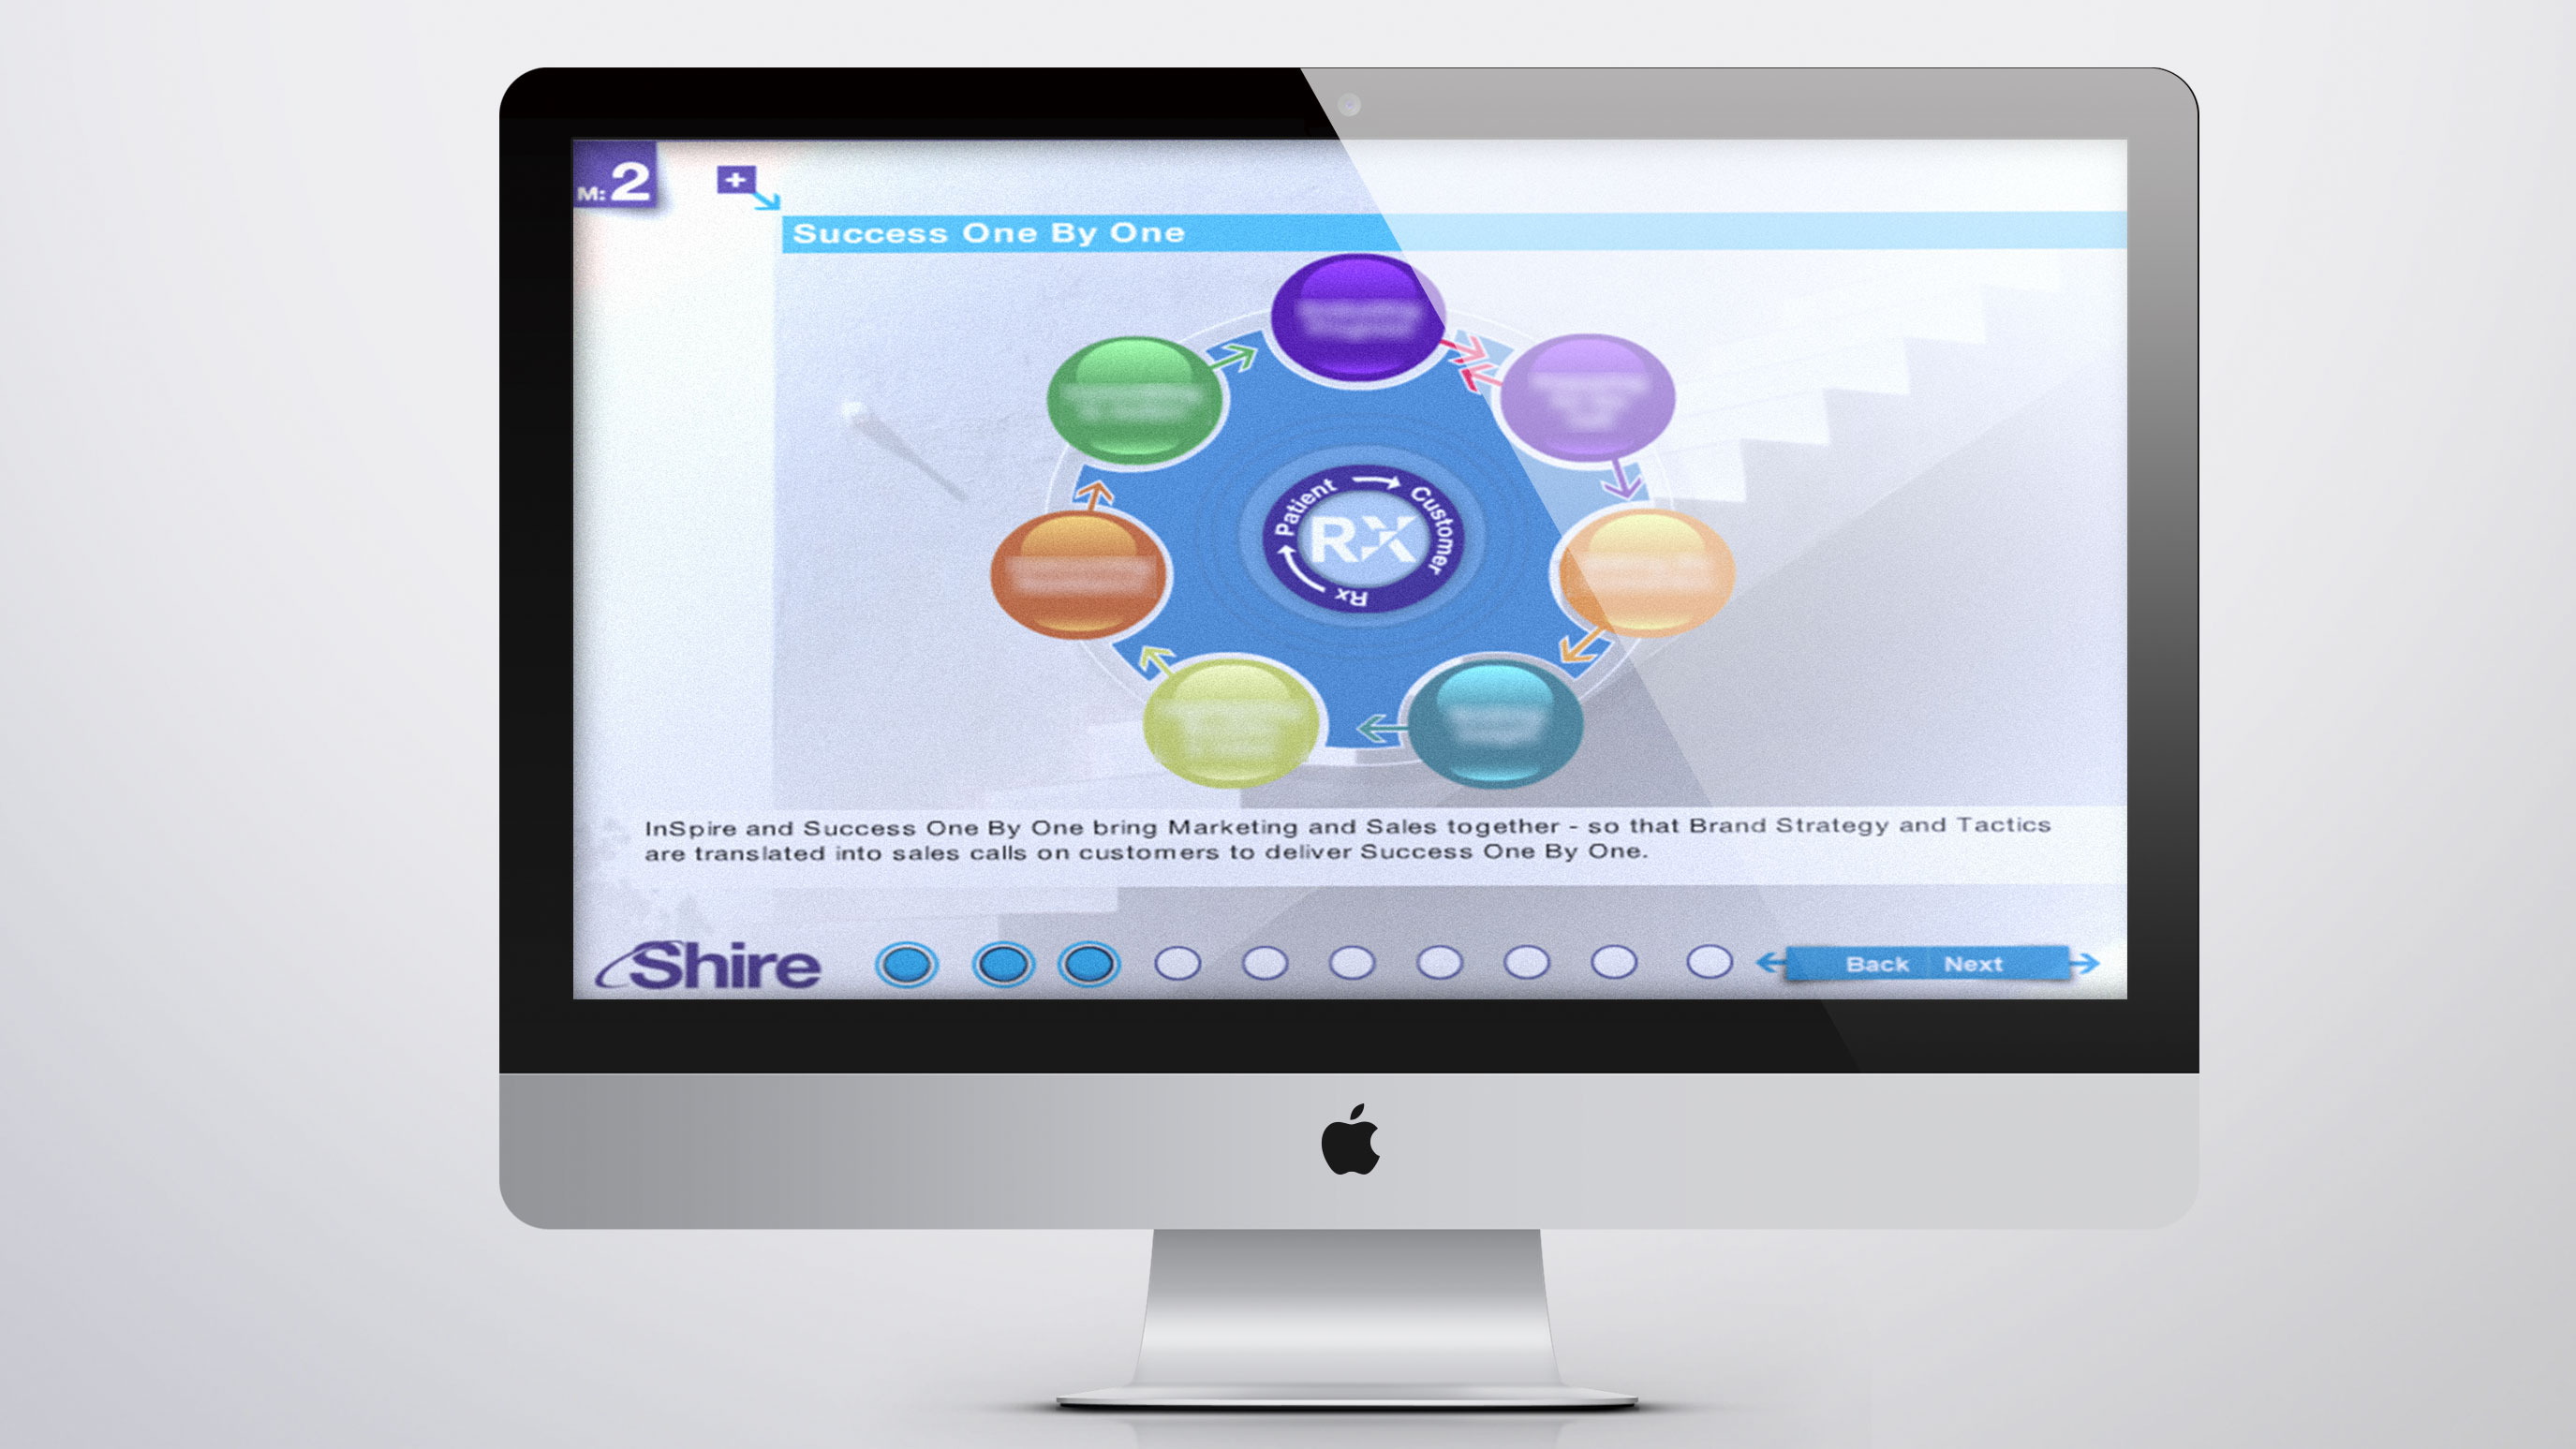 shire_elearning3